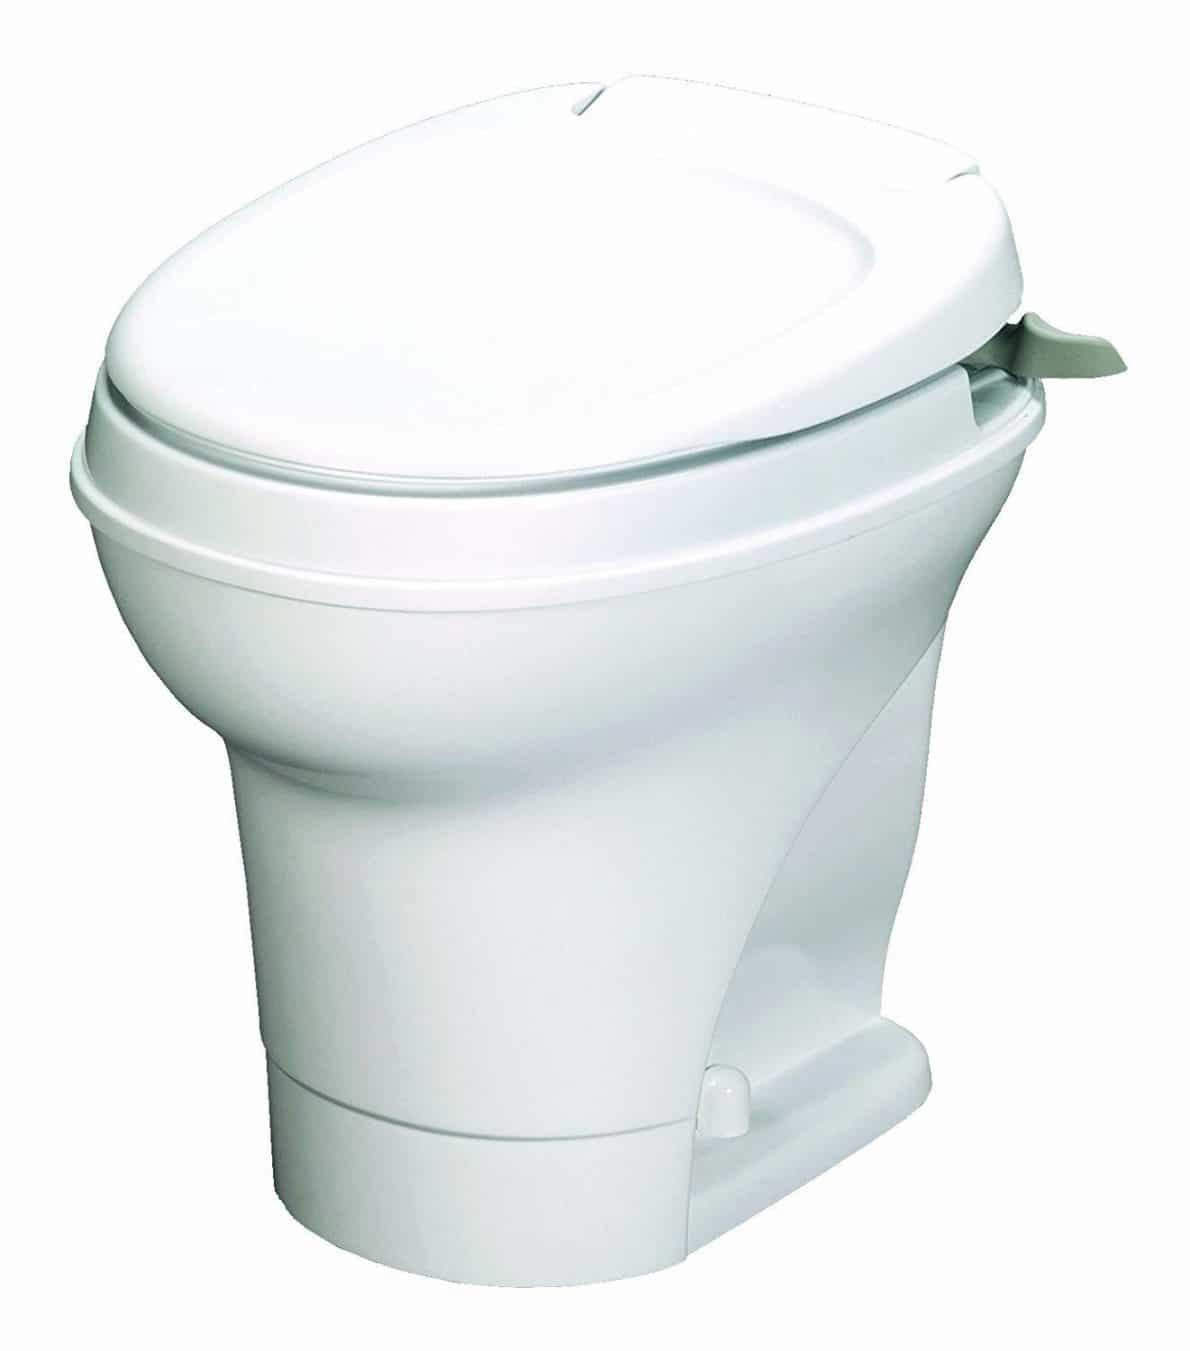 Strange 7 Best Rv Toilet Reviews 2019 Top Picks And Guide Onthecornerstone Fun Painted Chair Ideas Images Onthecornerstoneorg